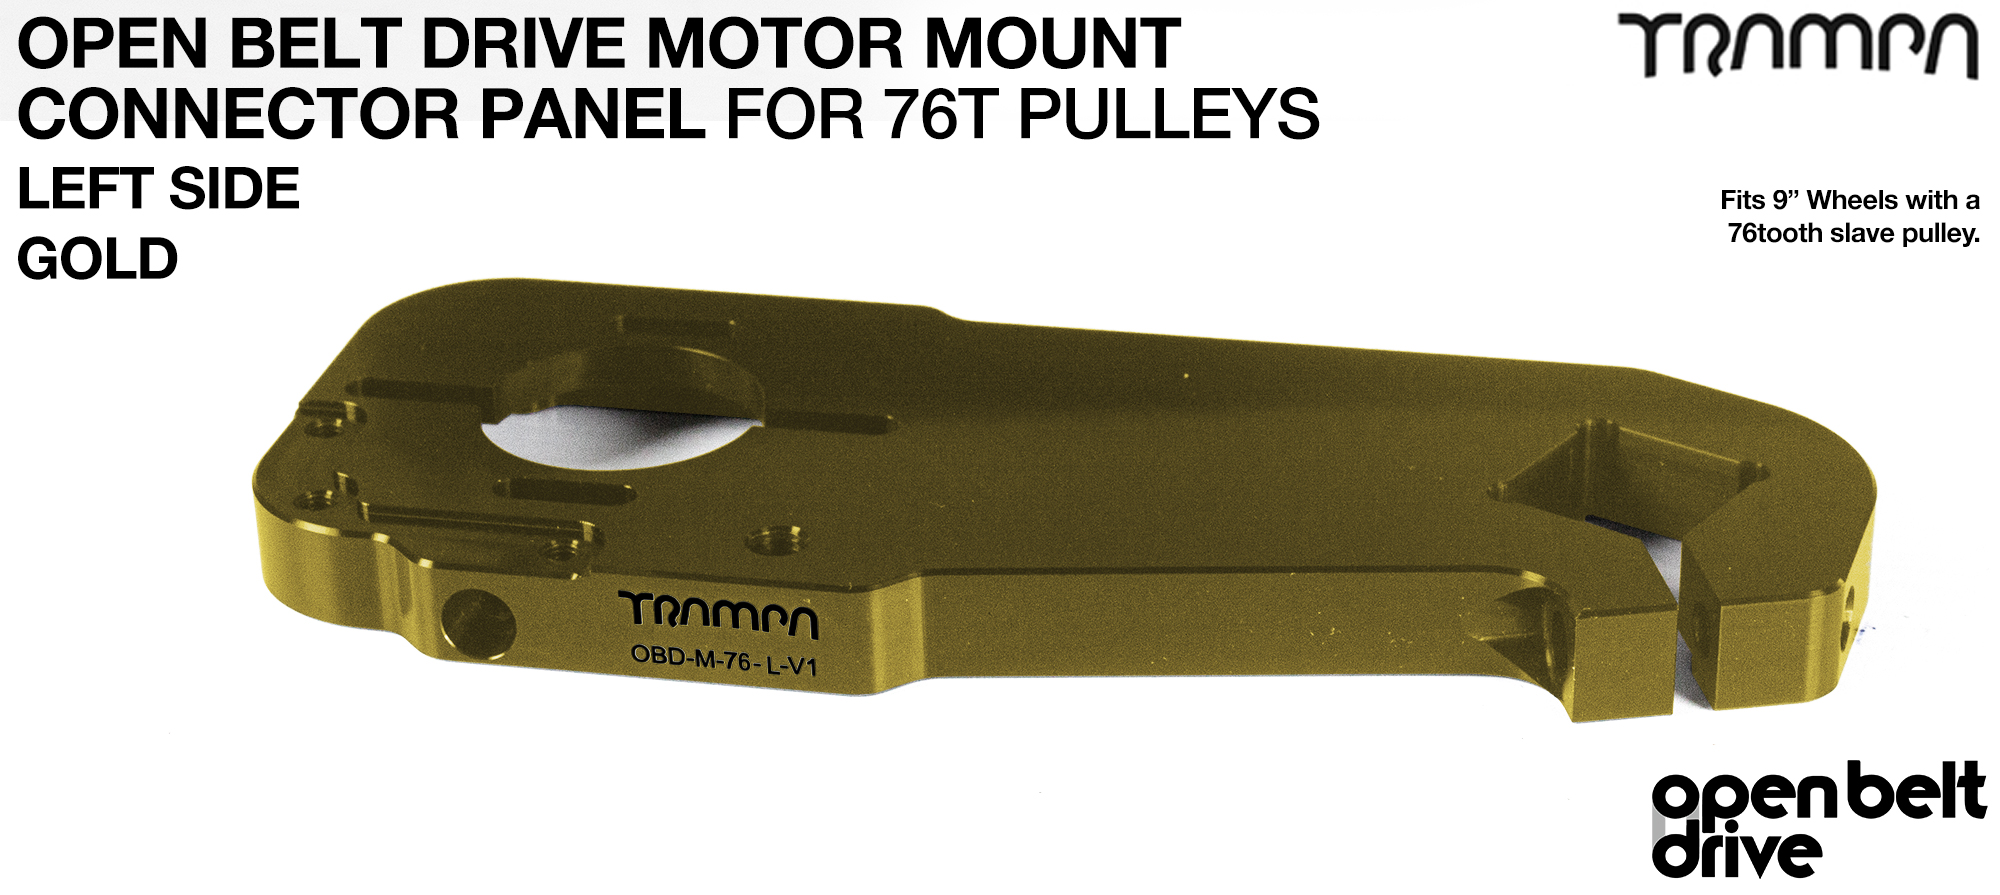 GOLD 76T TWIN OBD Motor Mount Connector Panels